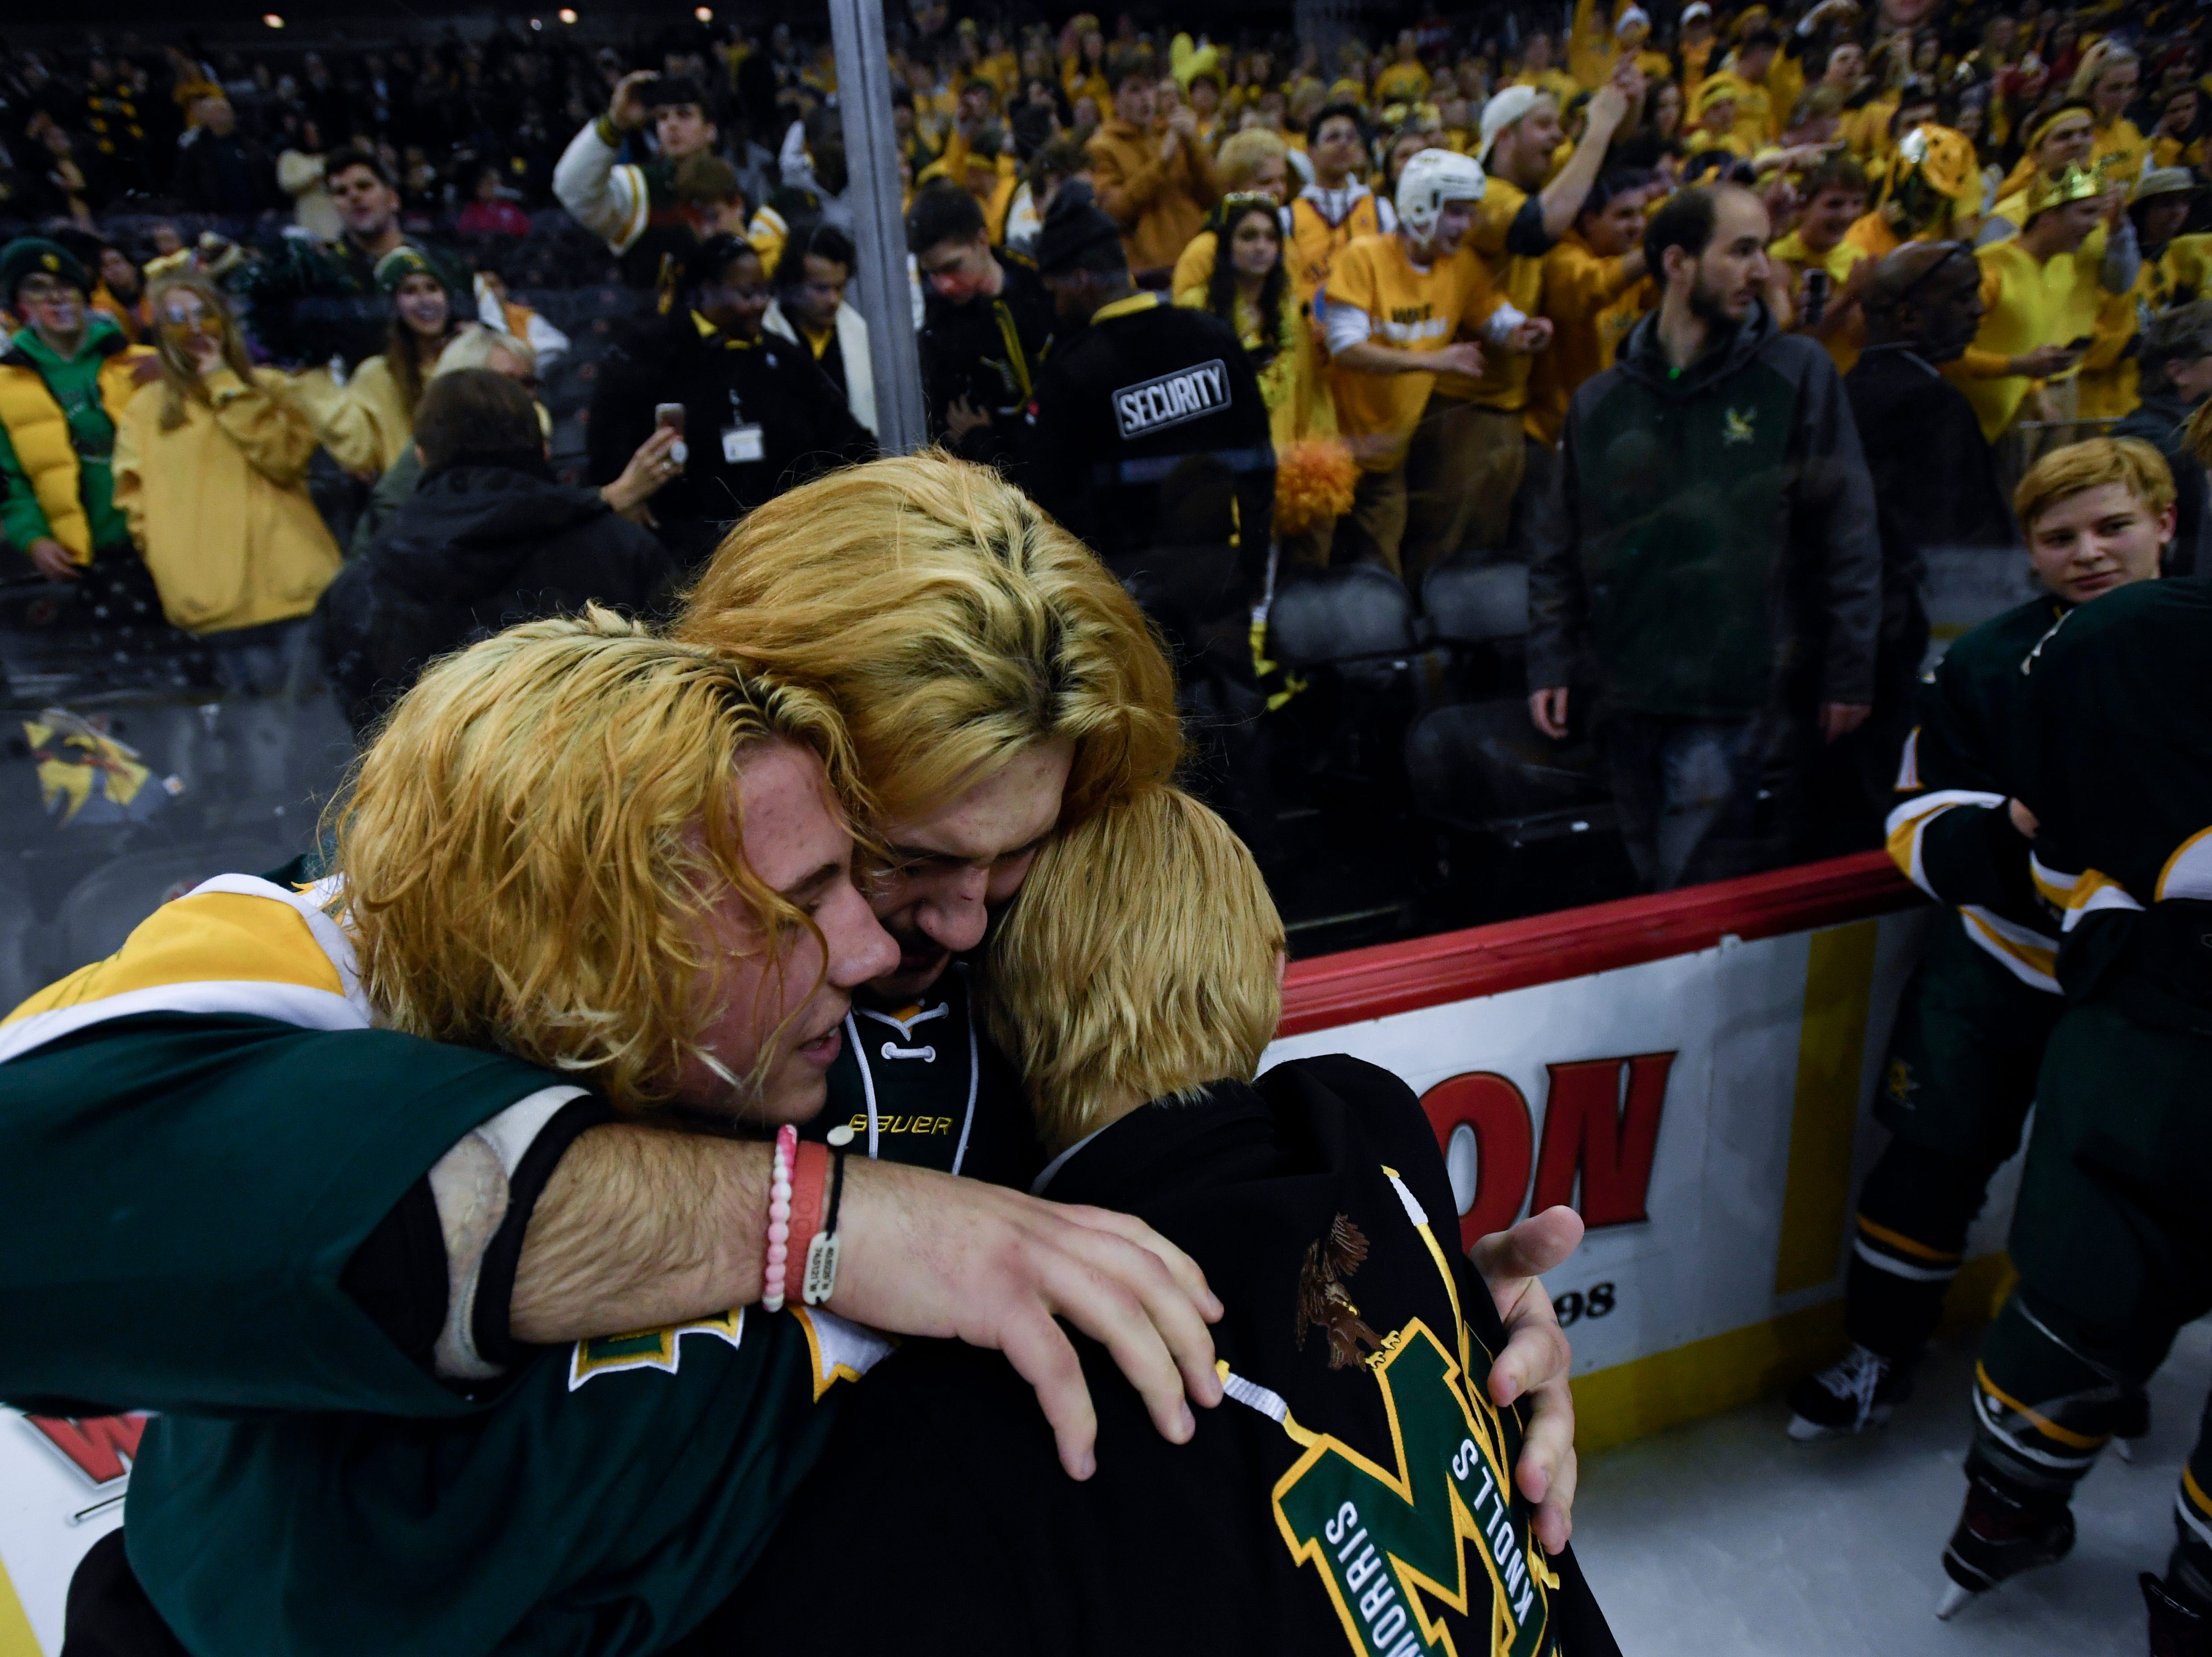 Morris Knolls/Hills players celebrate on the ice after defeating Hillsborough 6-1 in the Public A ice hockey final at the Prudential Center on Monday, March 4, 2019, in Newark.